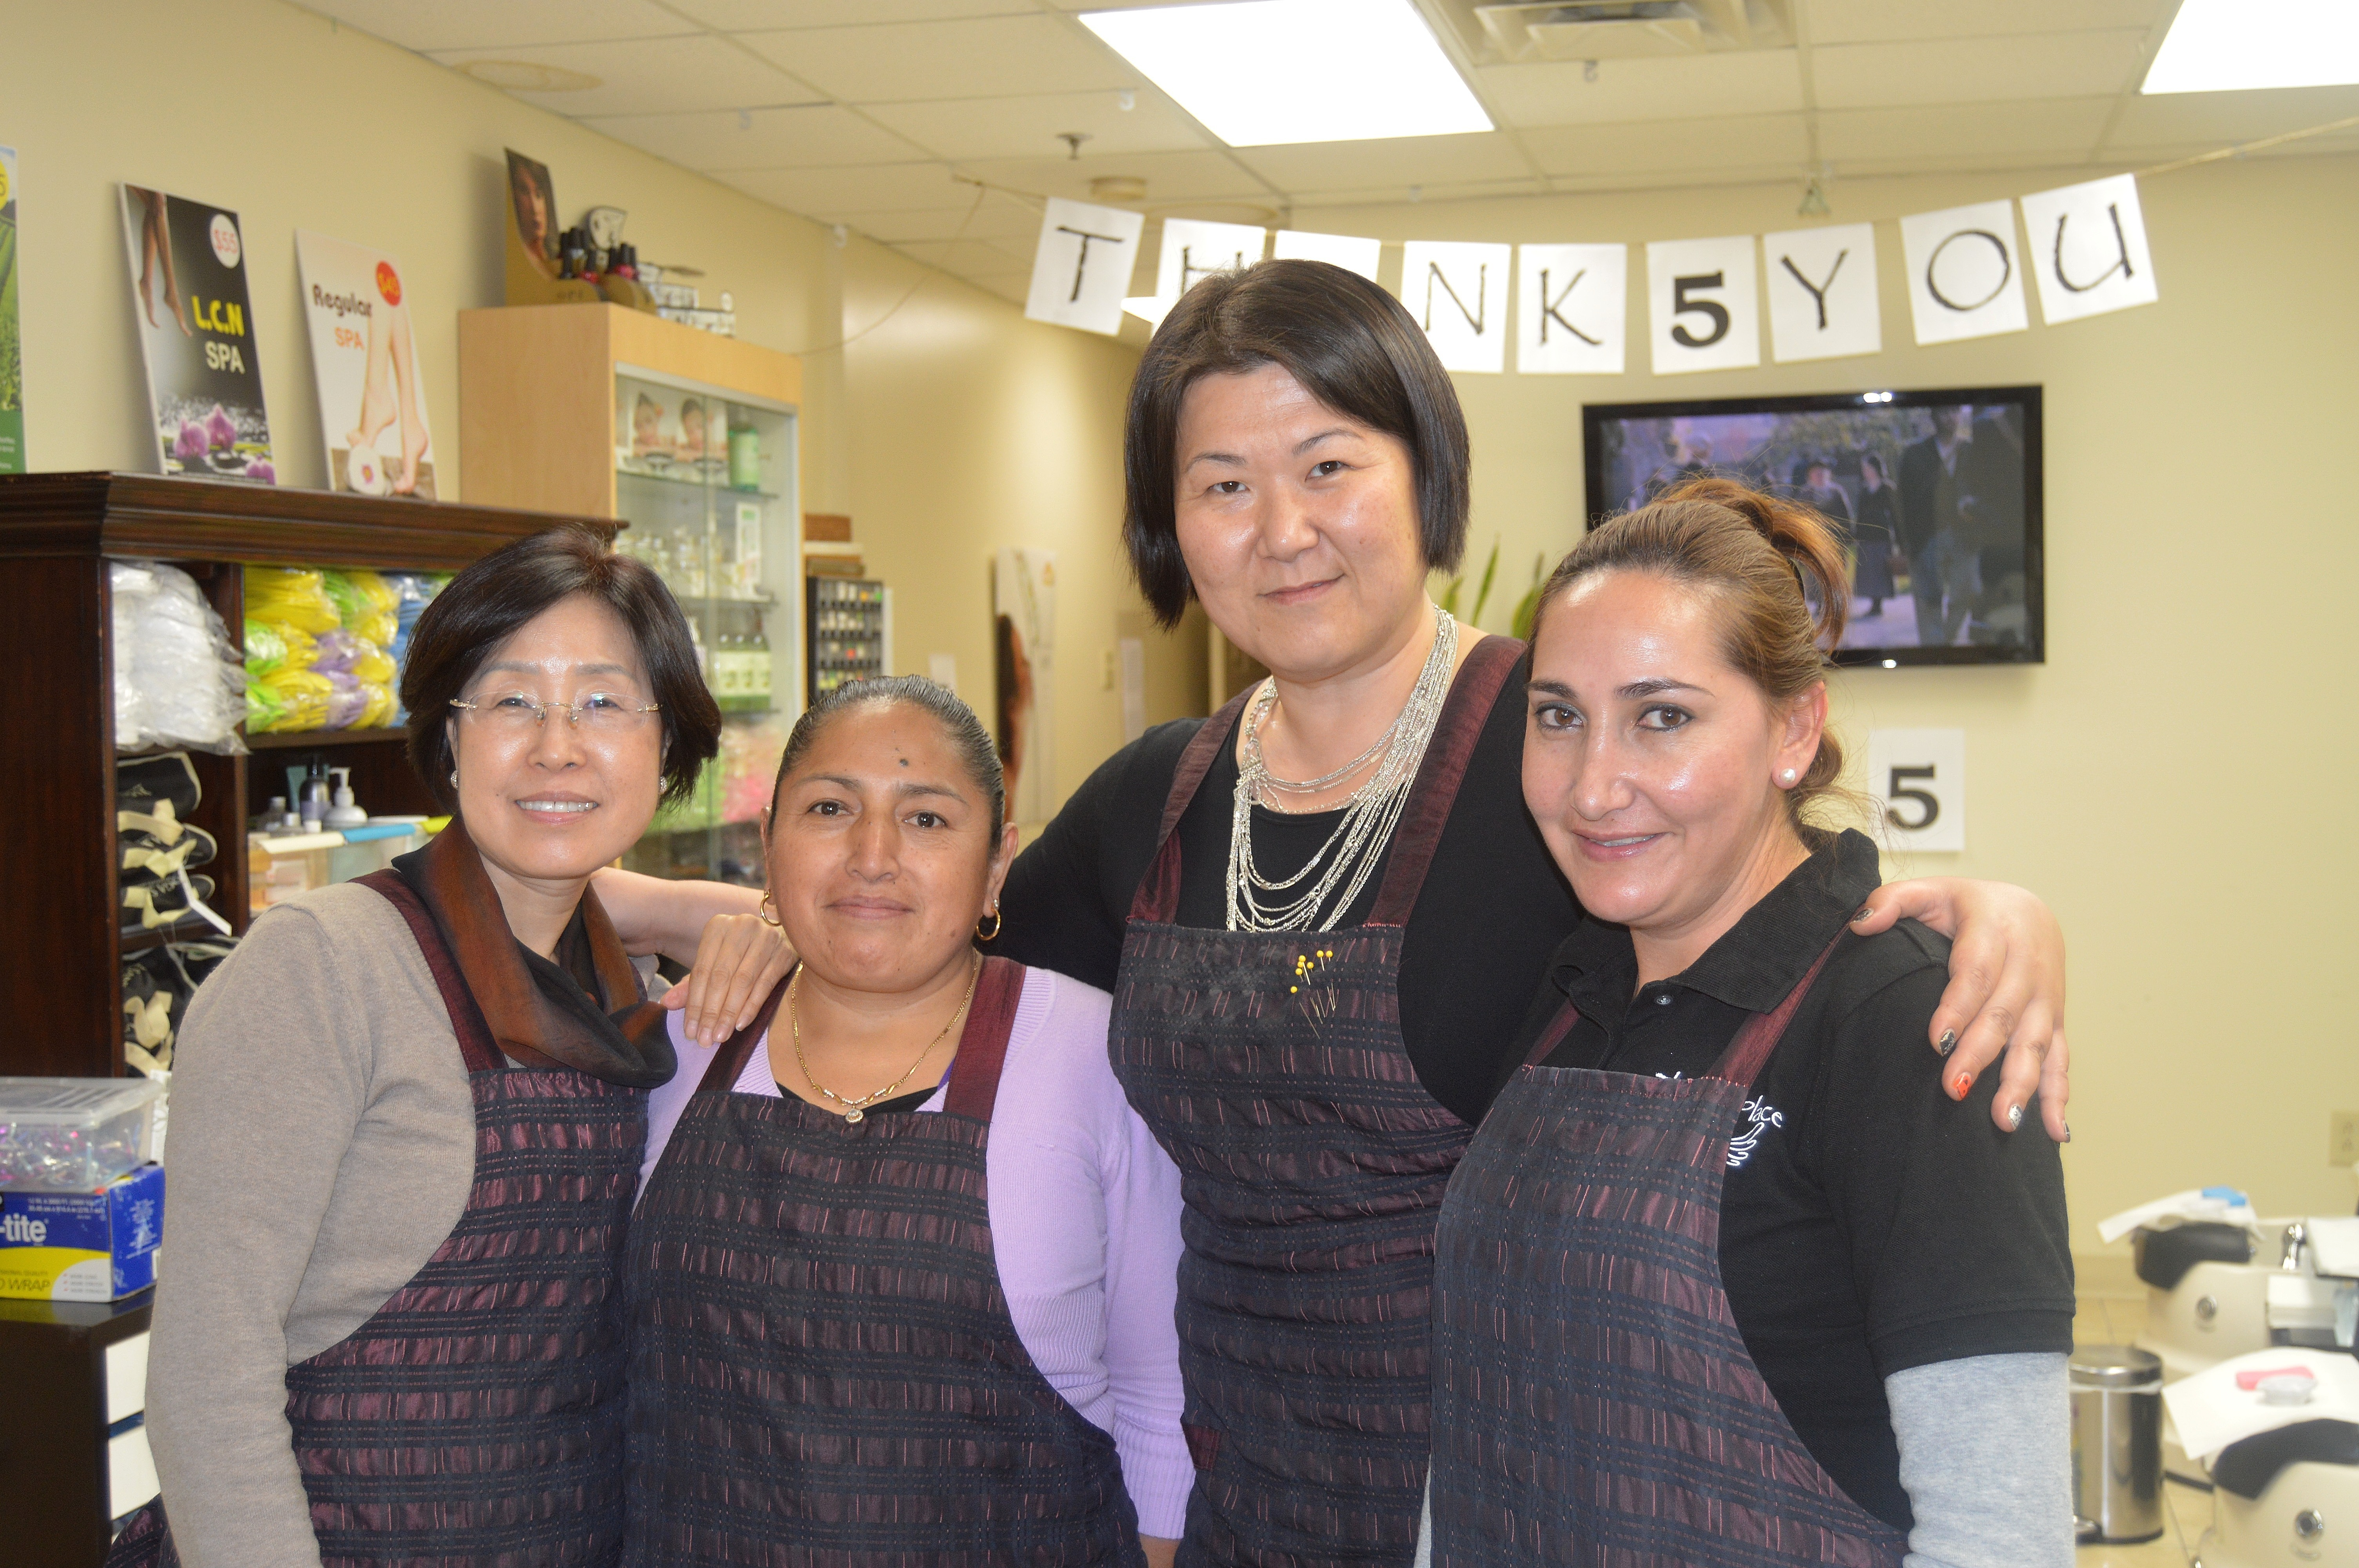 Nail Place Celebrates 5 Years in Scotch Plains - Scotch Plains ...